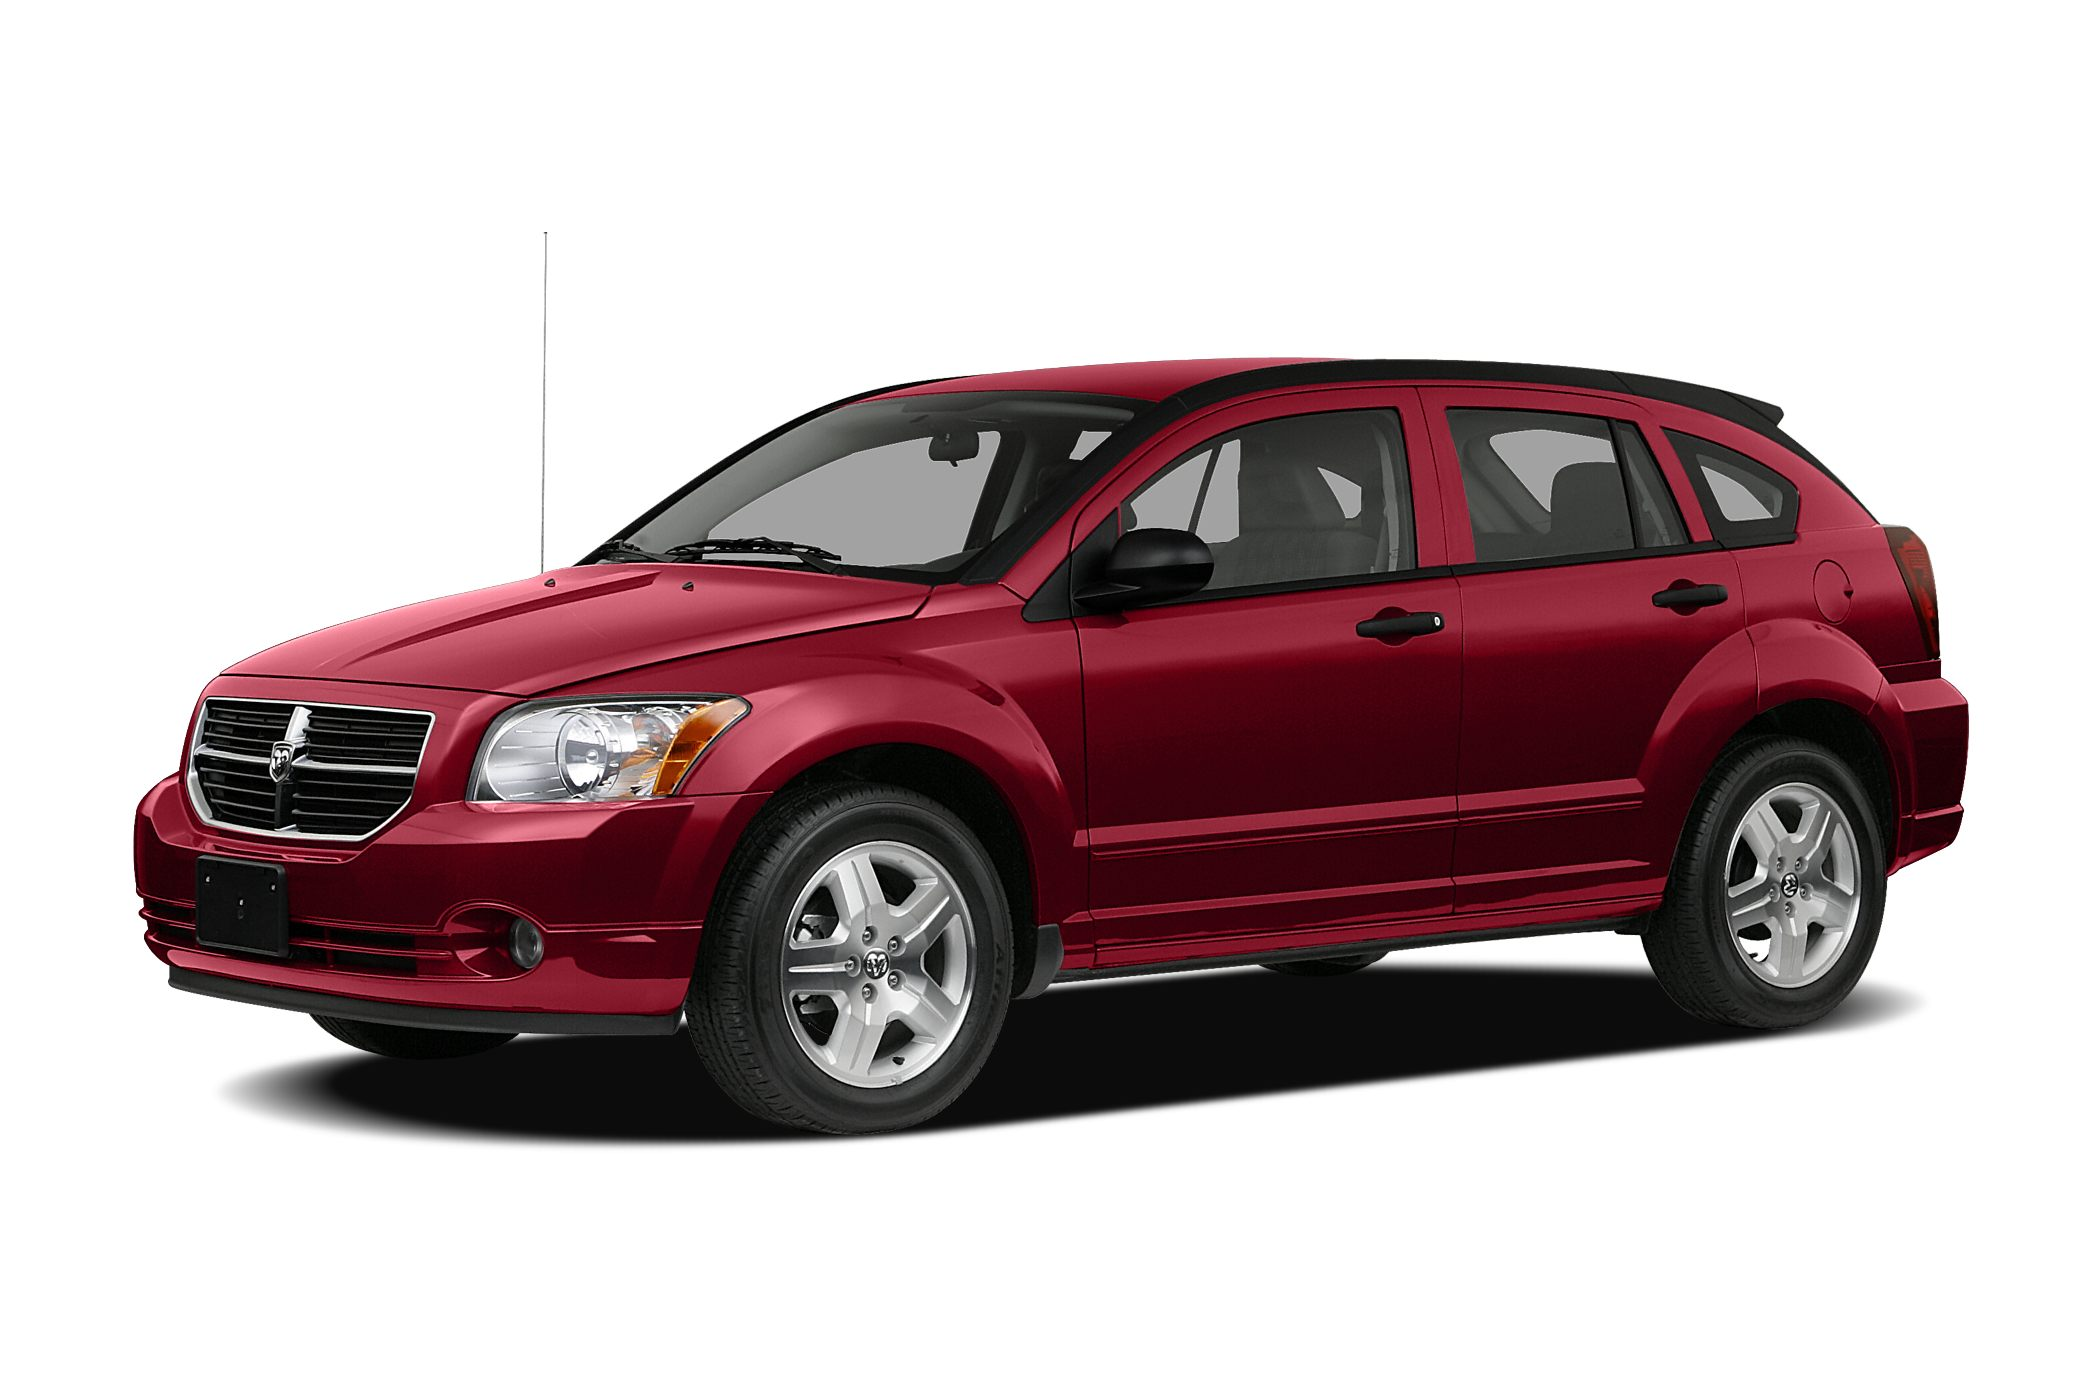 2008 Dodge Caliber SXT  WHEN IT COMES TO EXCELLENCE IN USED CAR SALES YOU KNOW YOURE AT STAR A